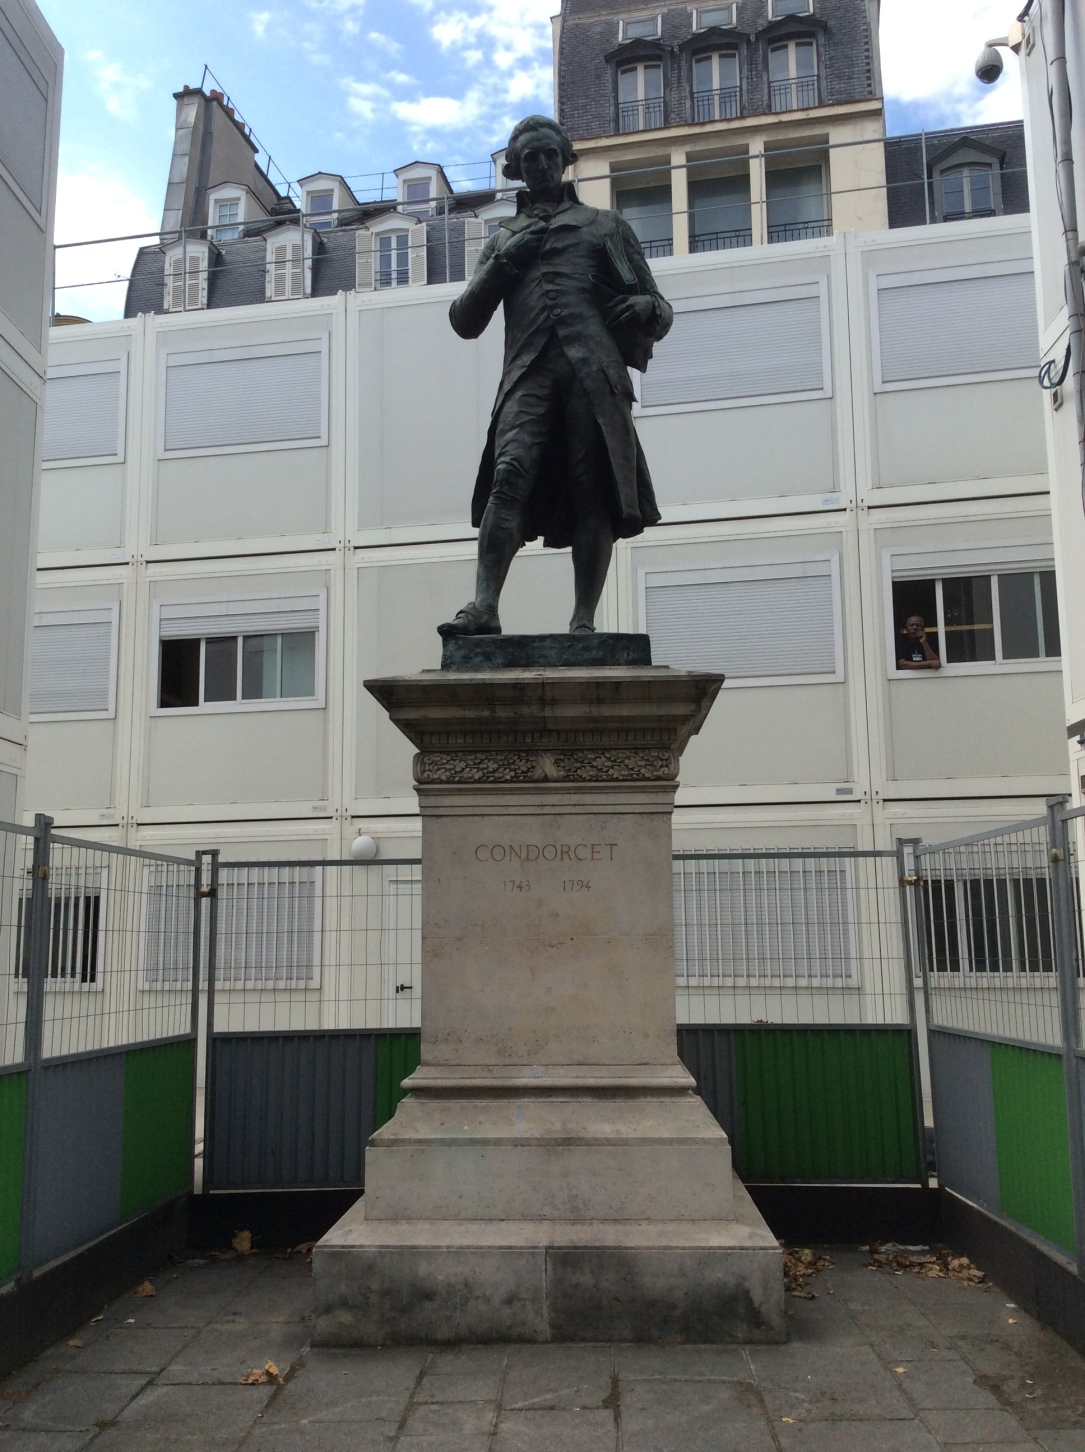 Statue of Condorcet on the Quai de Conti, France, Photo 2015 by Amy Cools